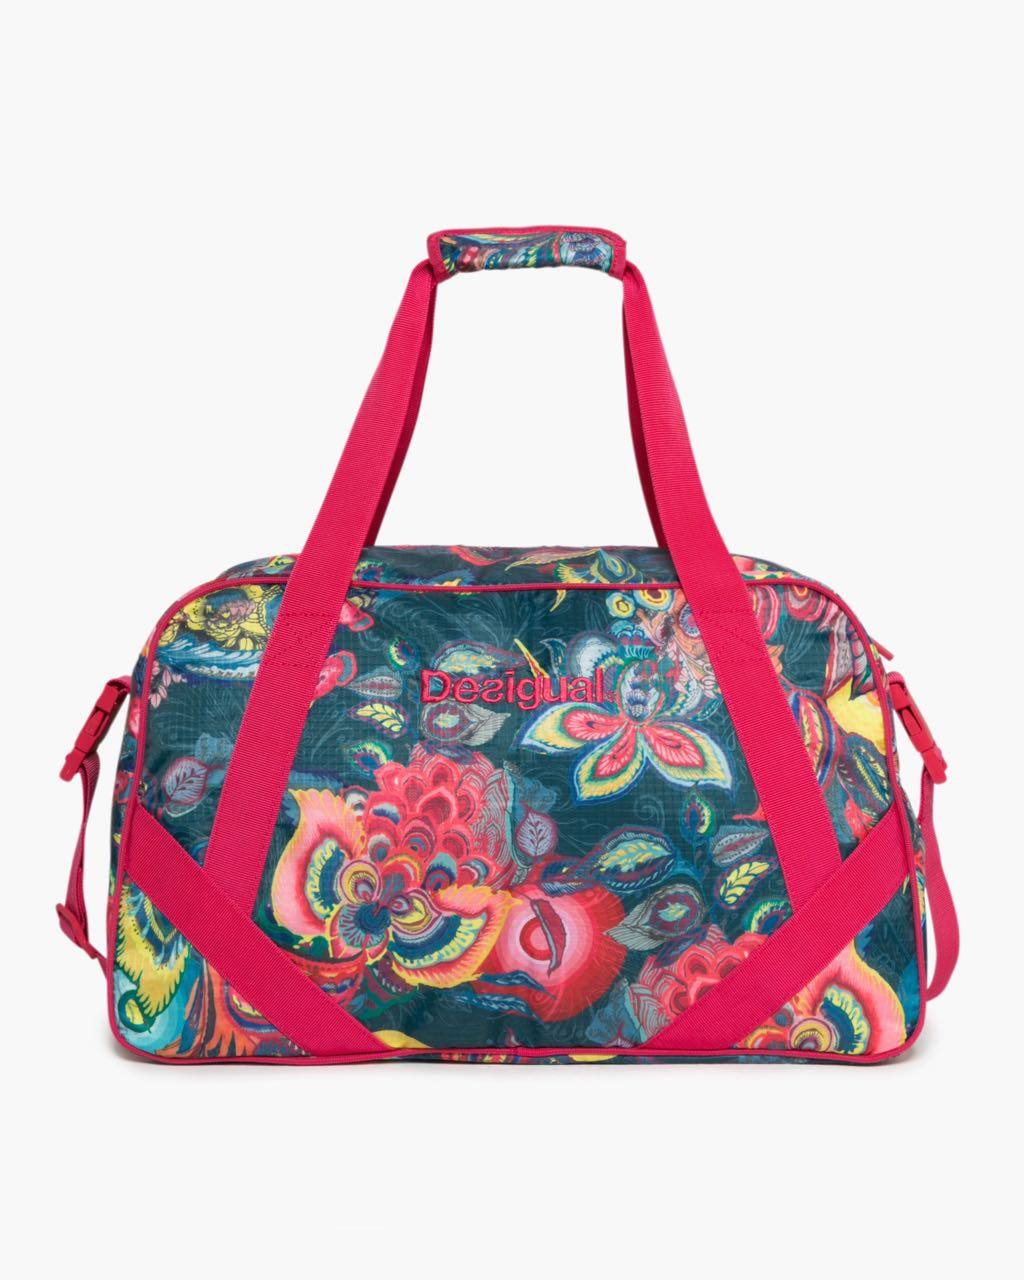 17WXRW23_4153 Desigual Sport Bag Gym Duffle Bag Buy Online